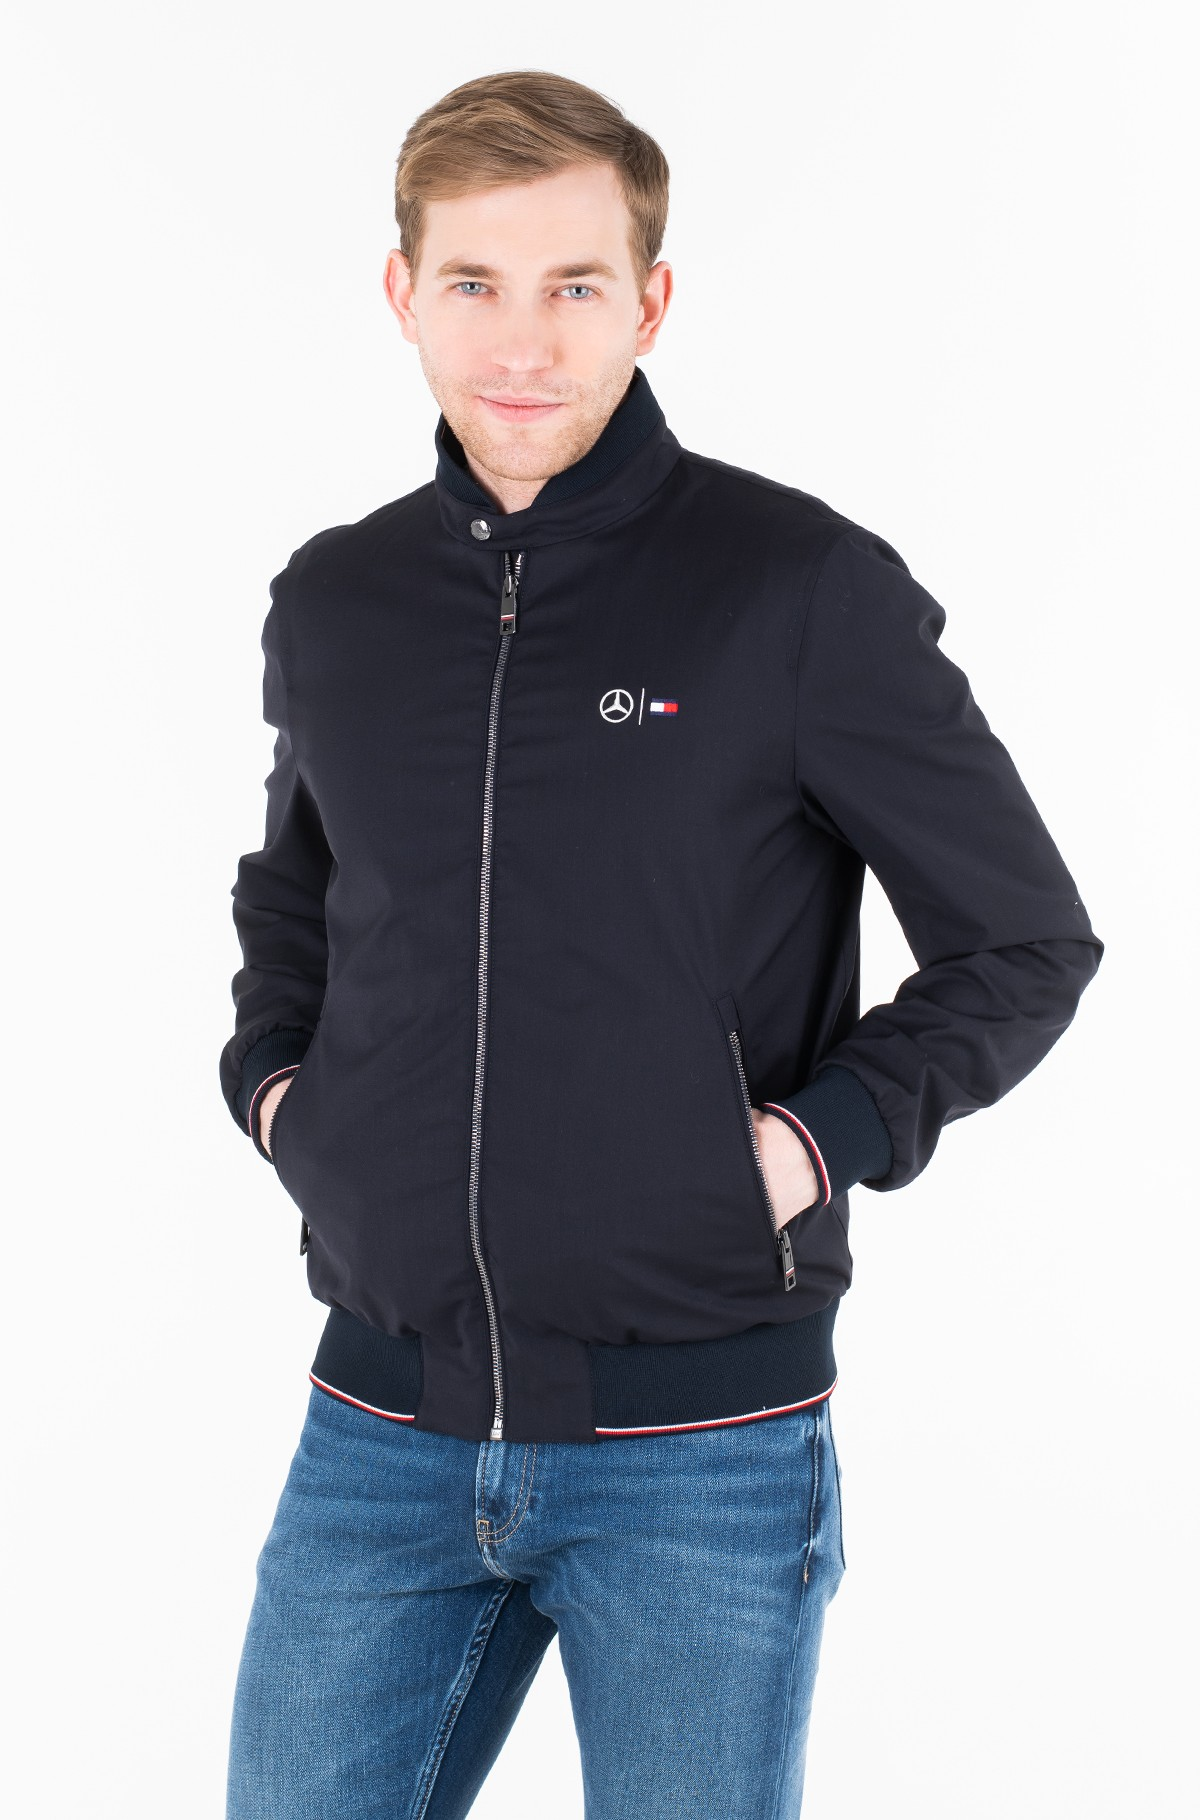 Jakk 2 MB WOOL BOMBER-full-1